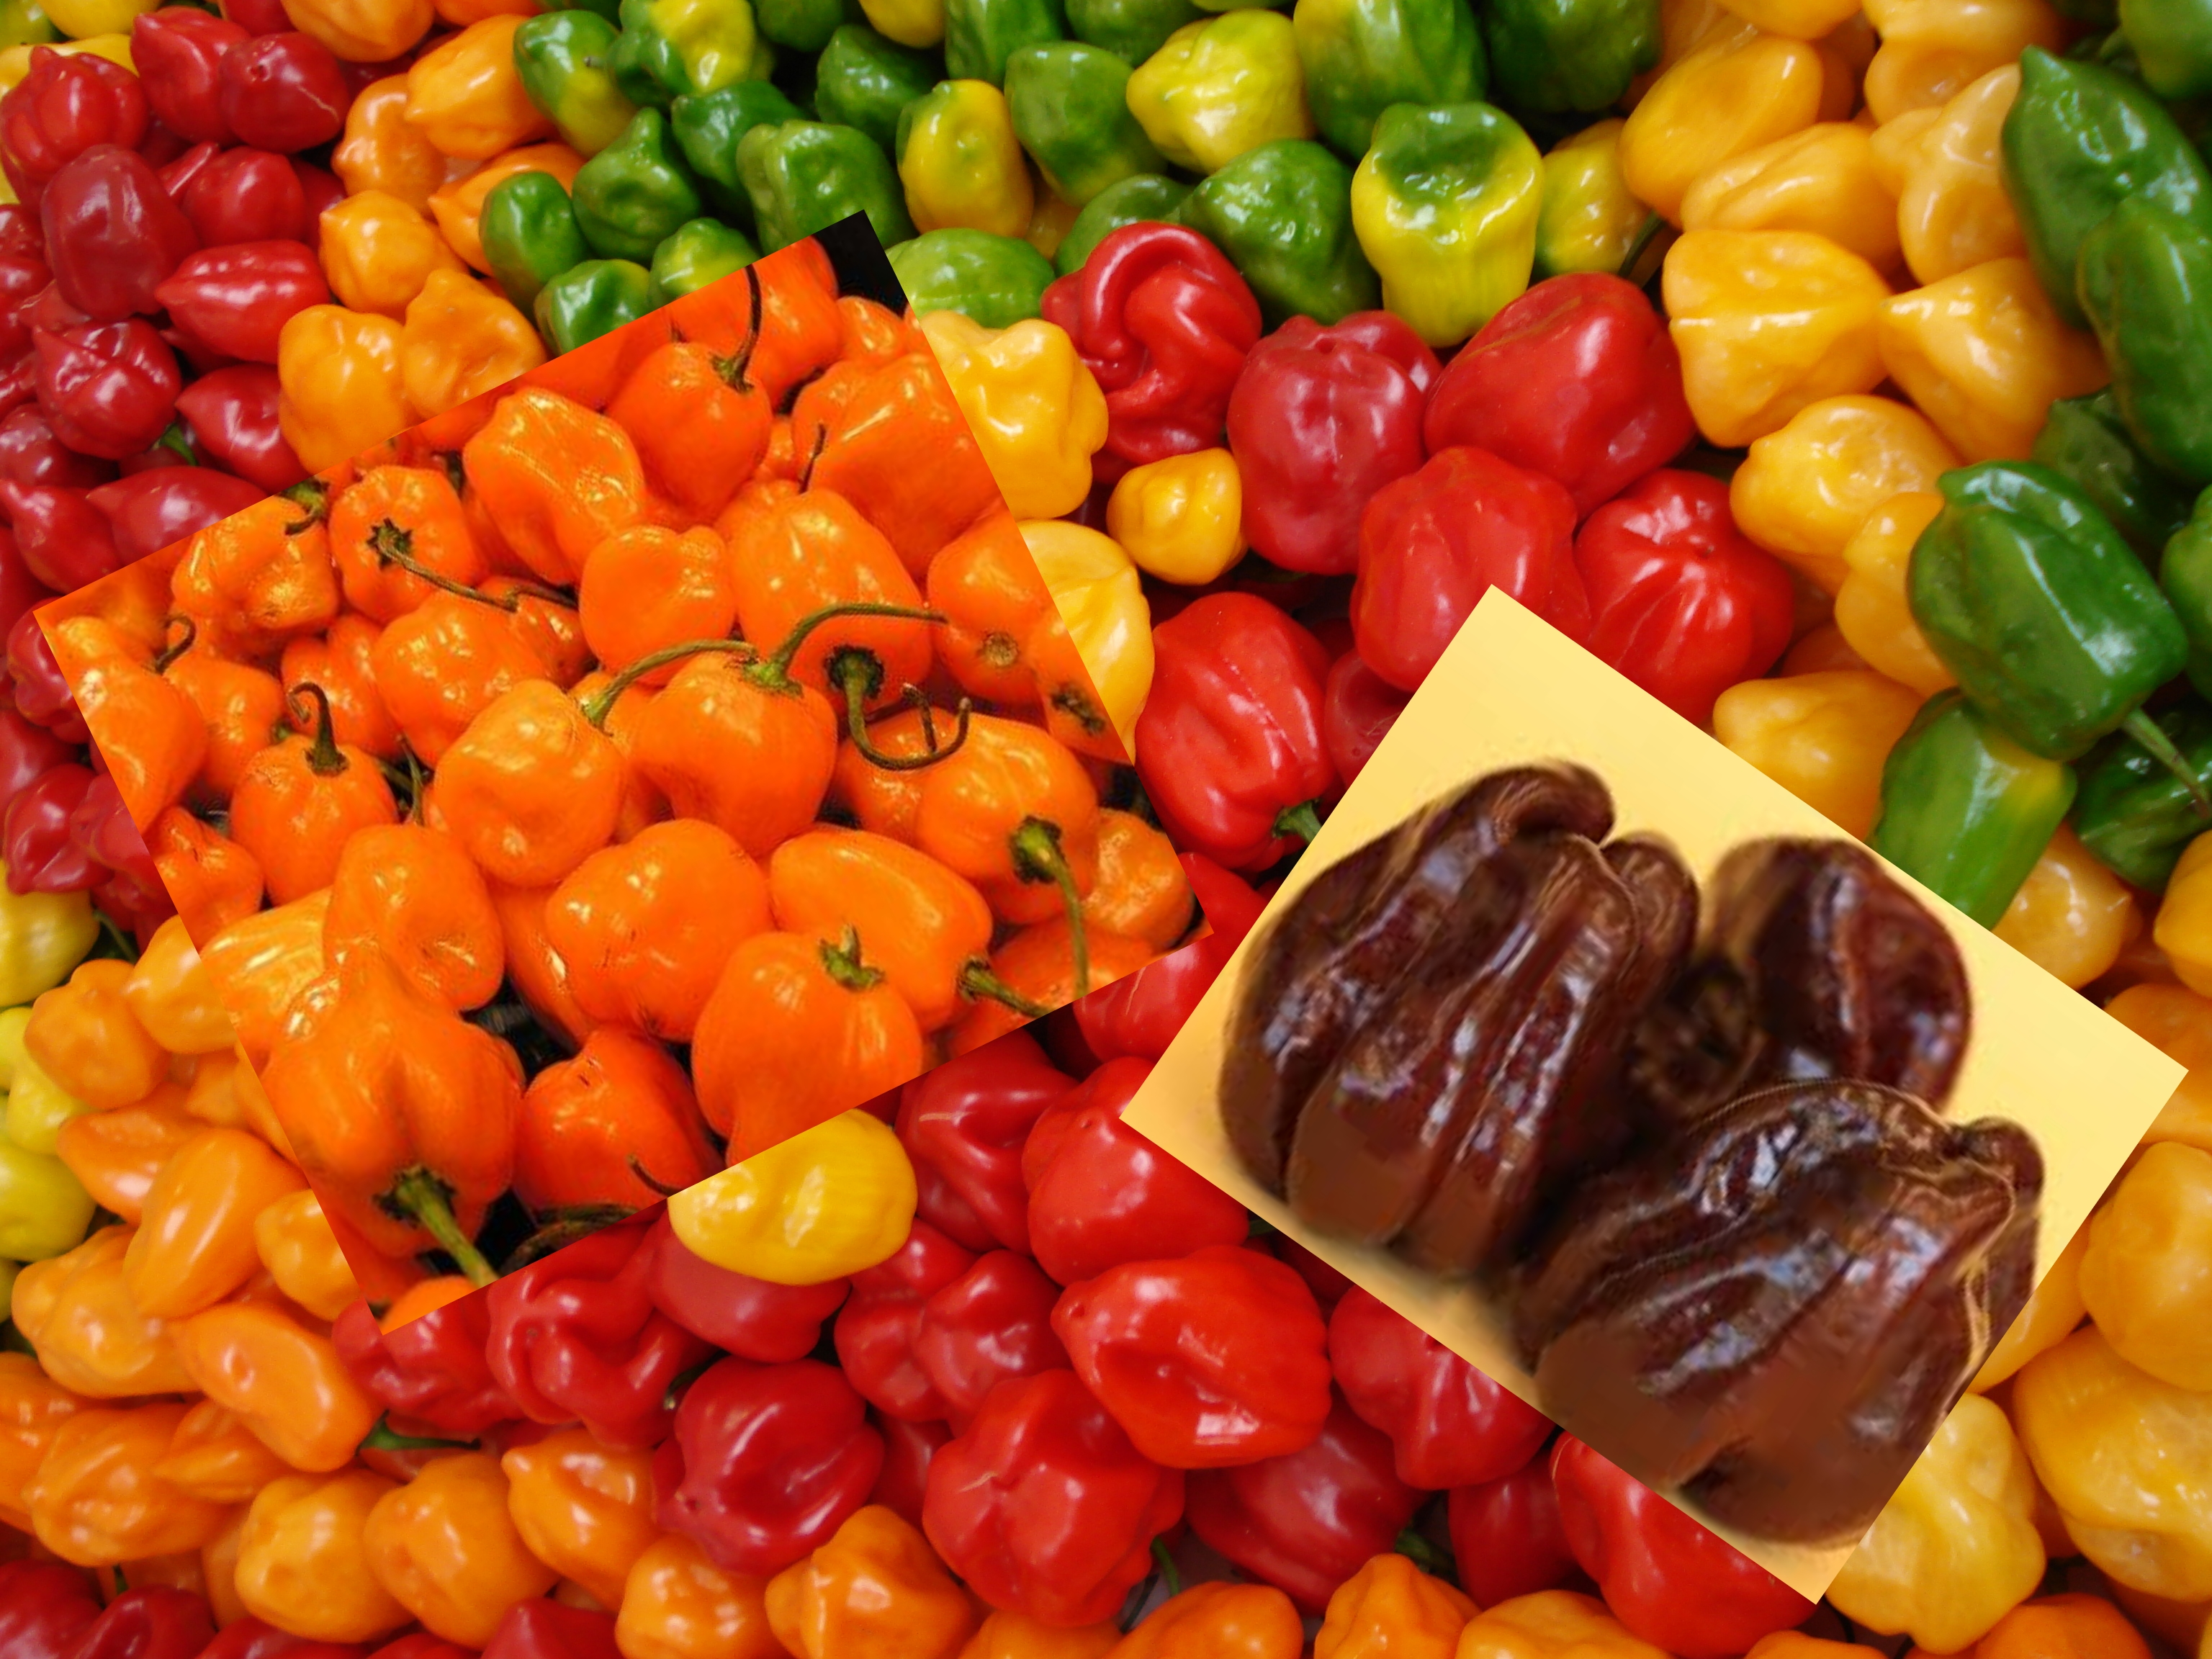 Hot Pepper Capsaicin May Prevent Some Colon Cancer